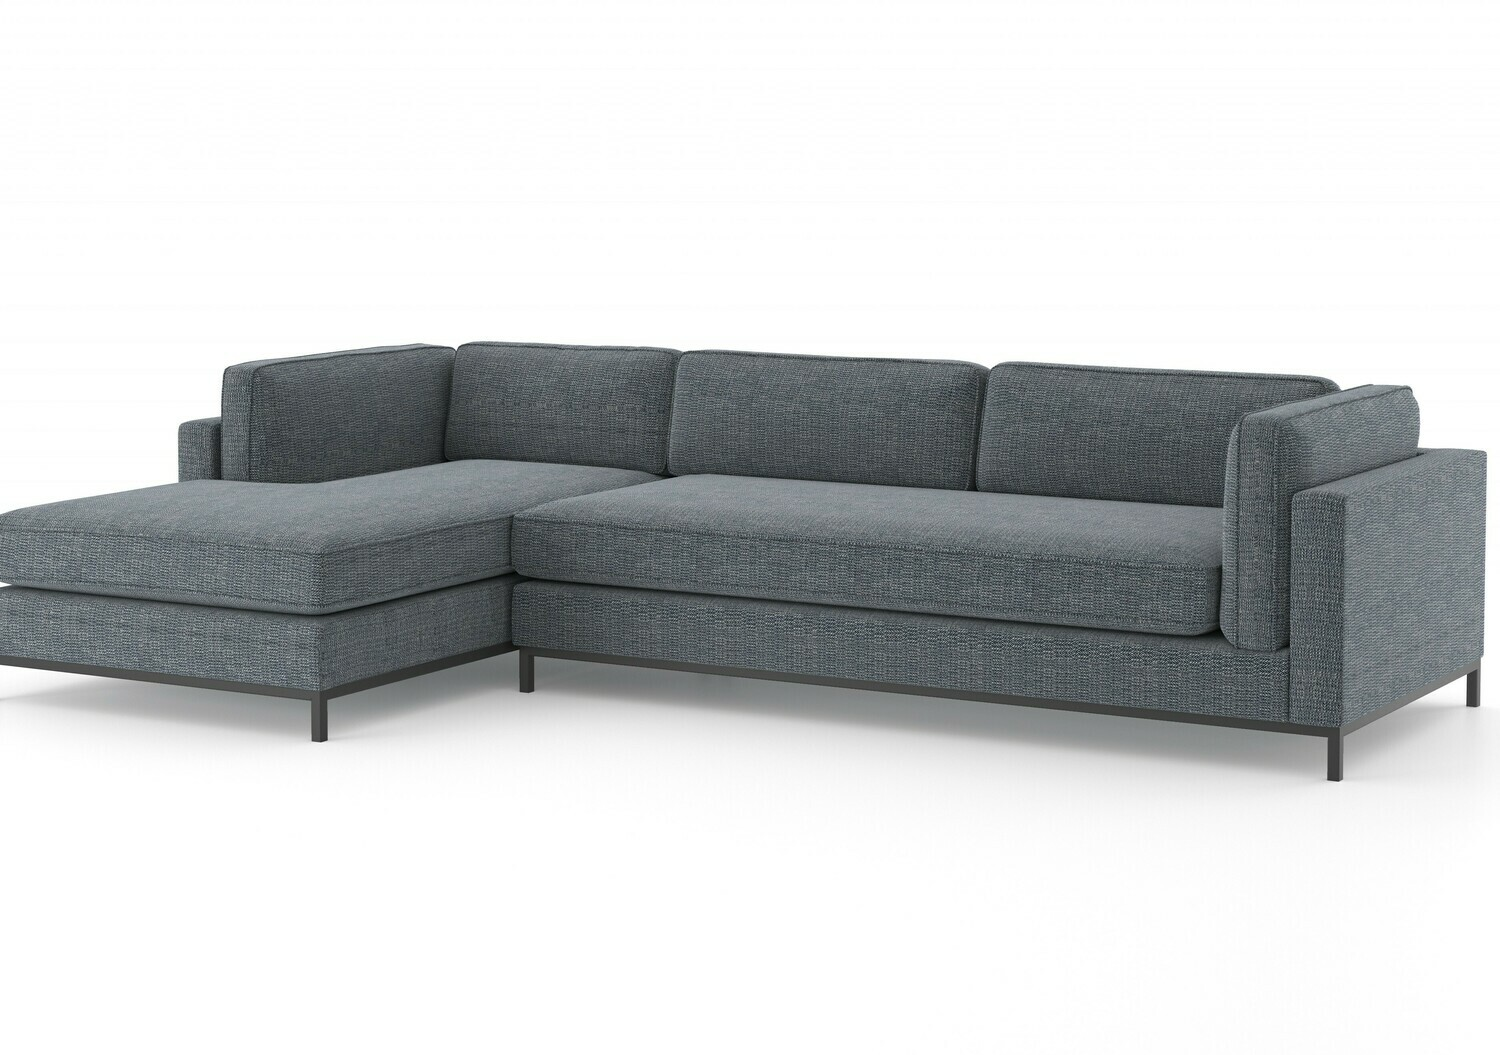 Grammercy 2 Piece Chaise Sectional - Cypress Navy